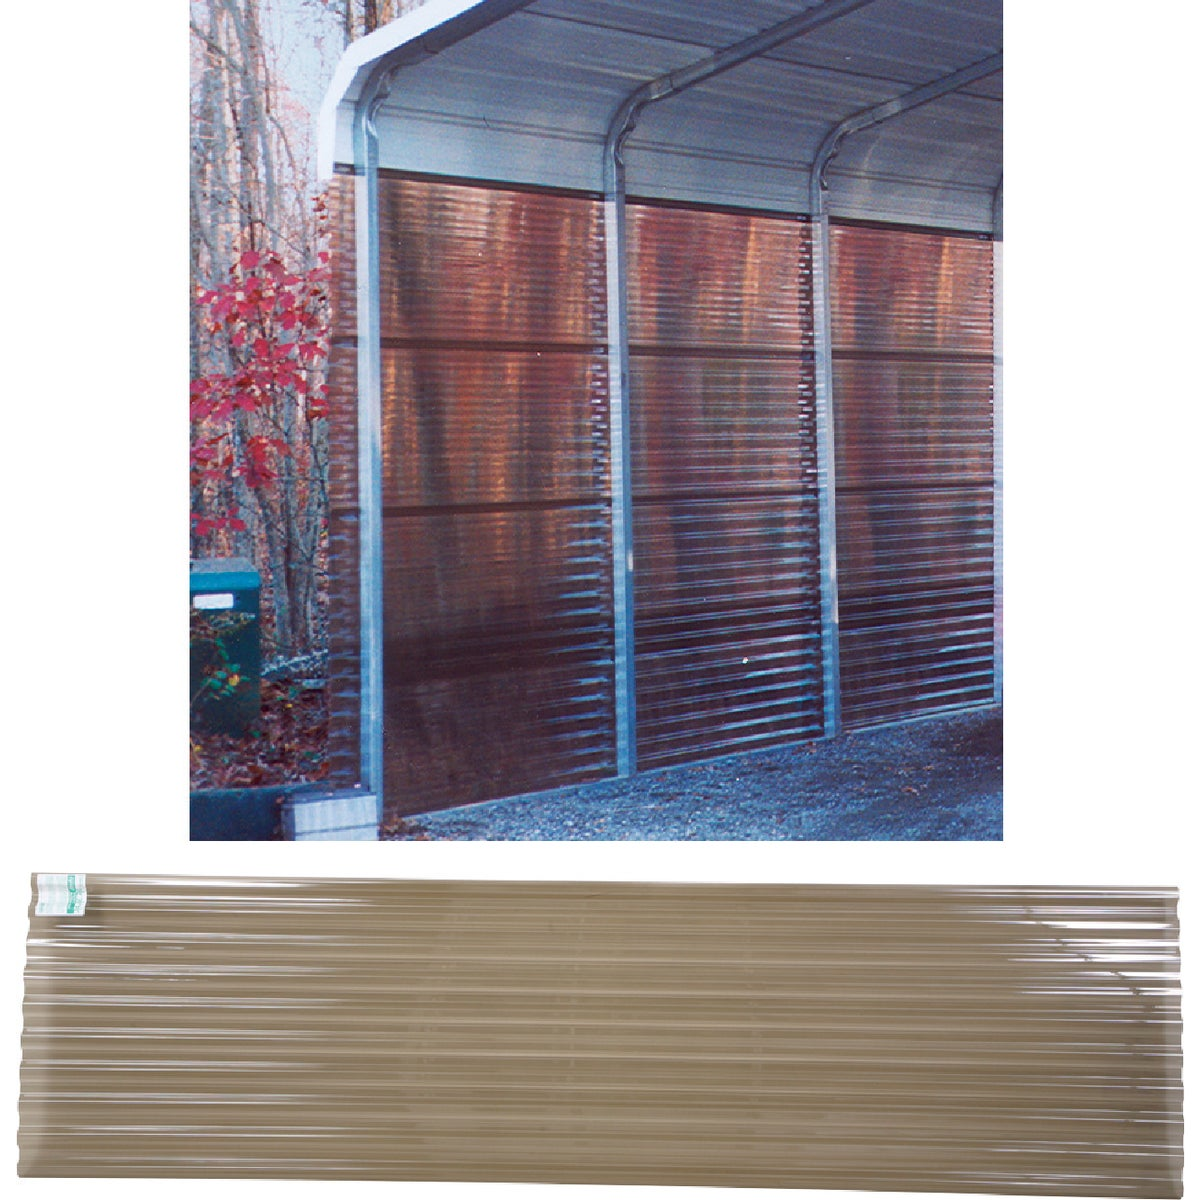 8' SMK CORRUGATED PANEL - 141912 by Ofic North America